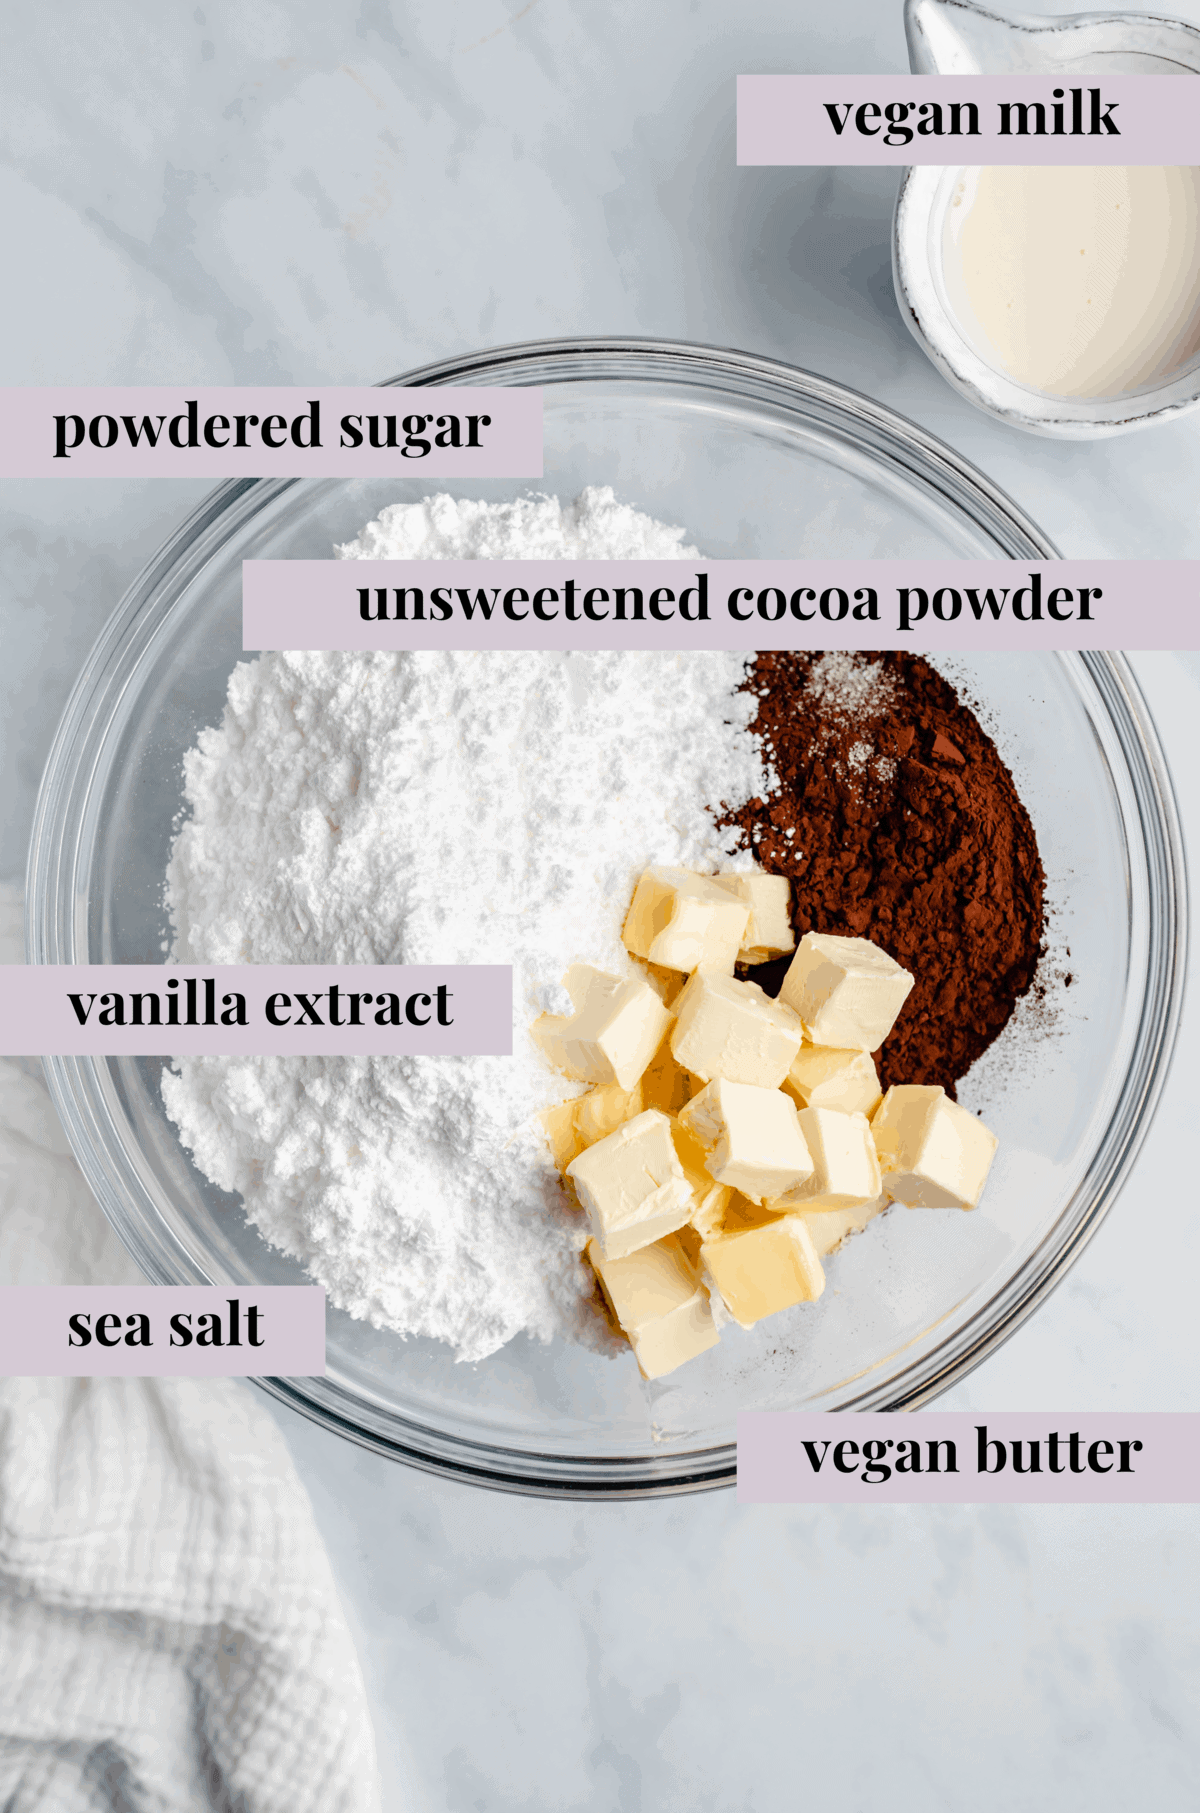 powdered sugar, cocoa powder, vanilla extract, salt, and vegan butter in a glass bowl